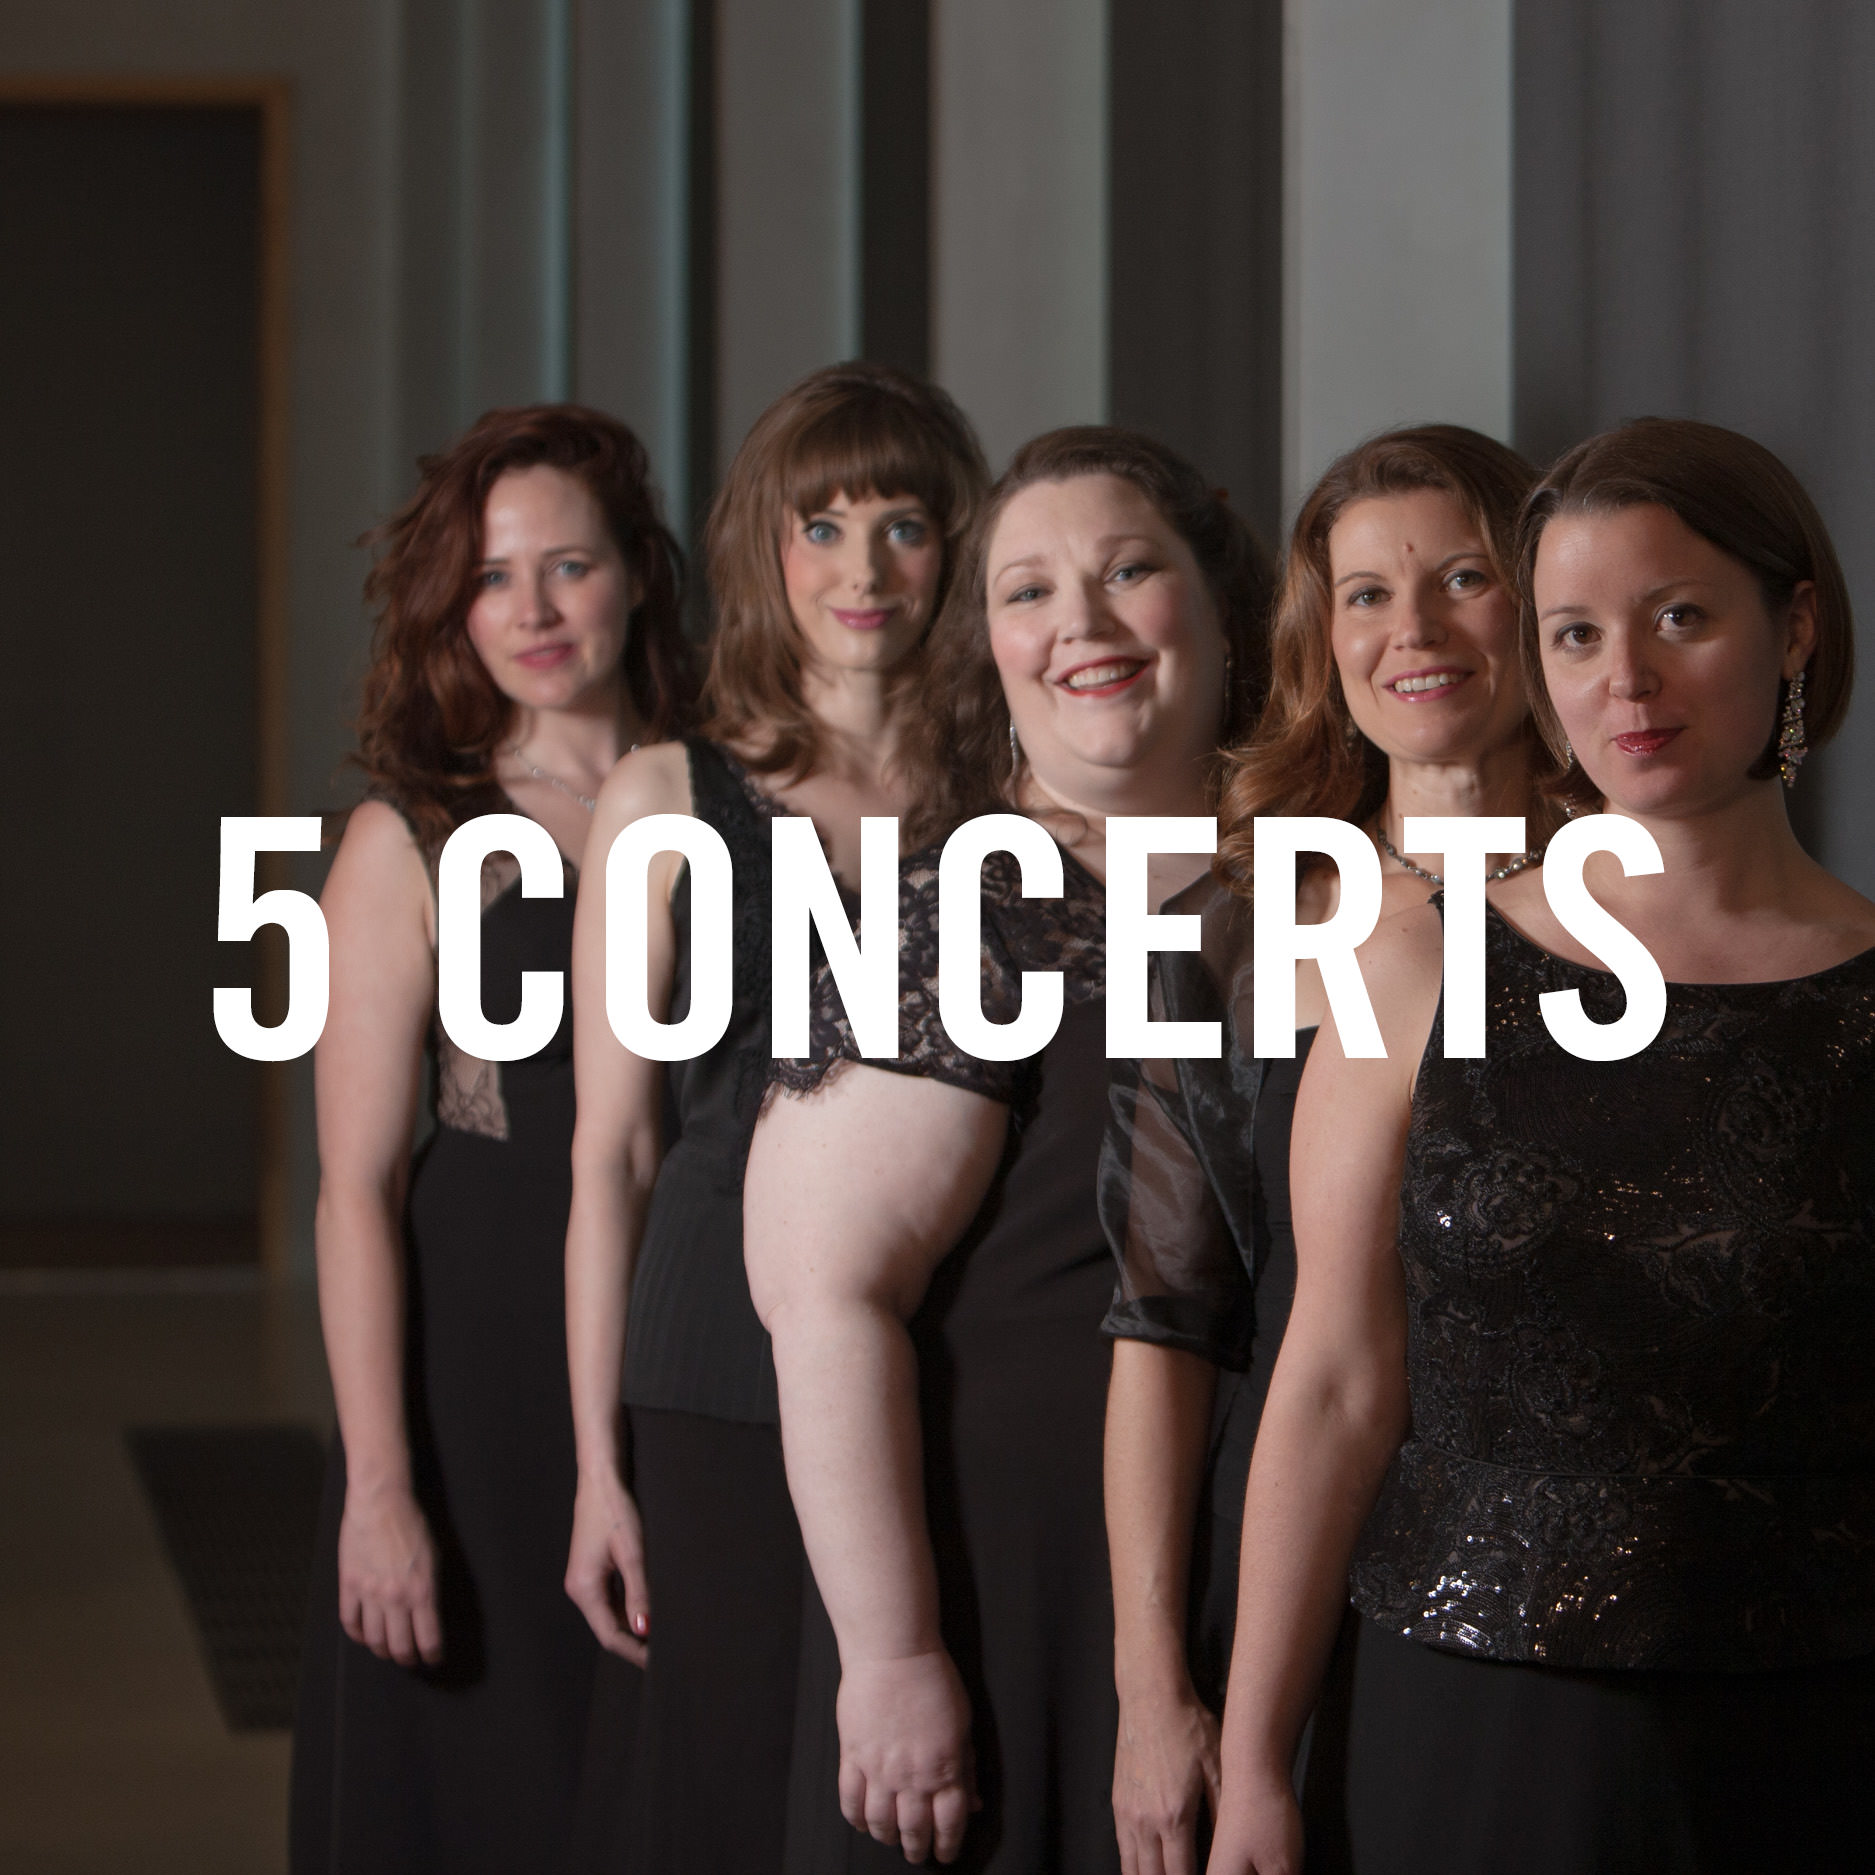 5 Concerts